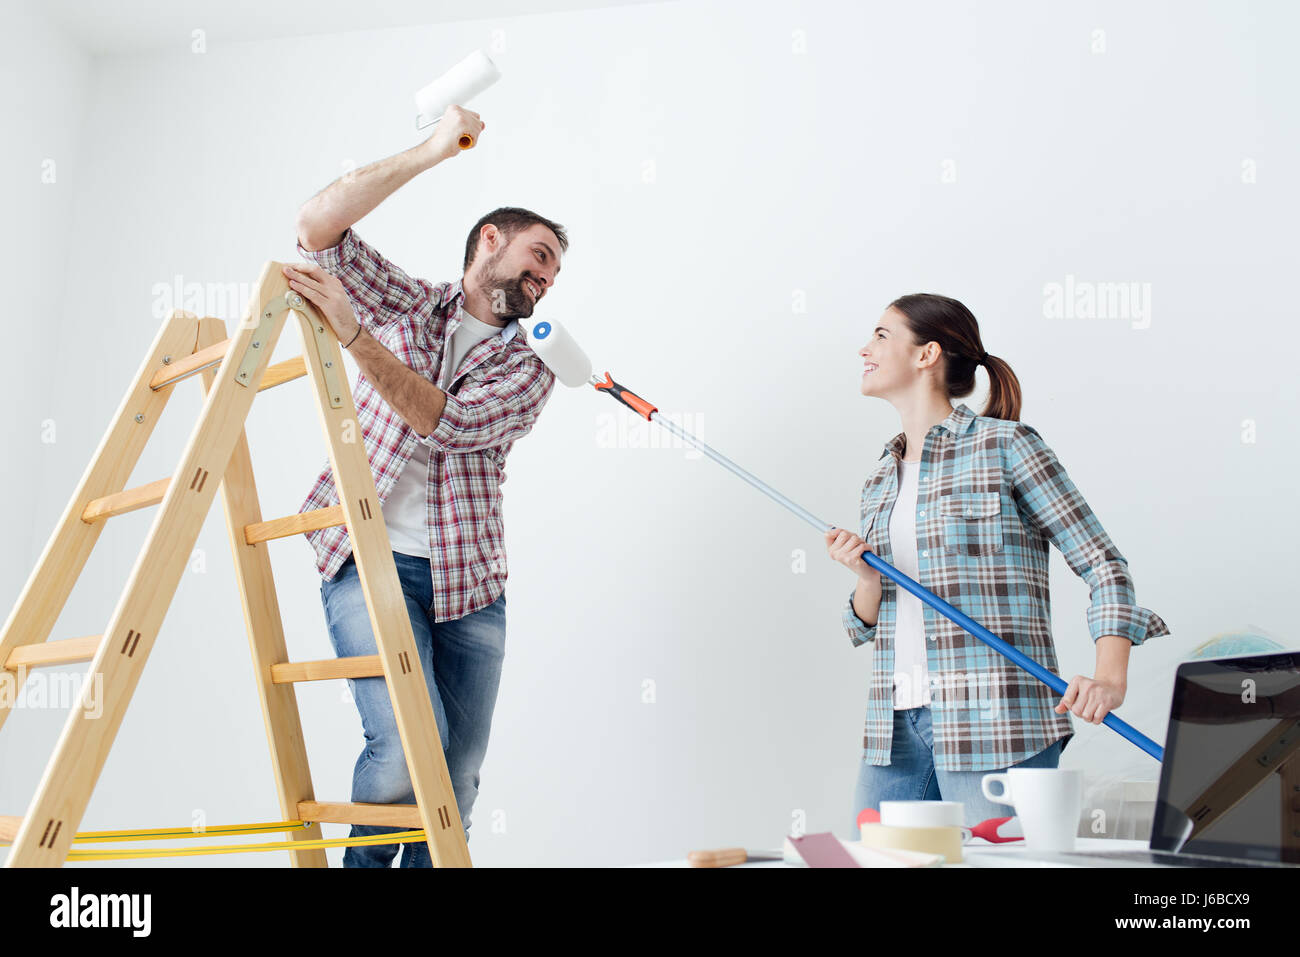 Playful Happy Couple Painting Their New House And Having Fun Together They Are Playing With Paint Rollers